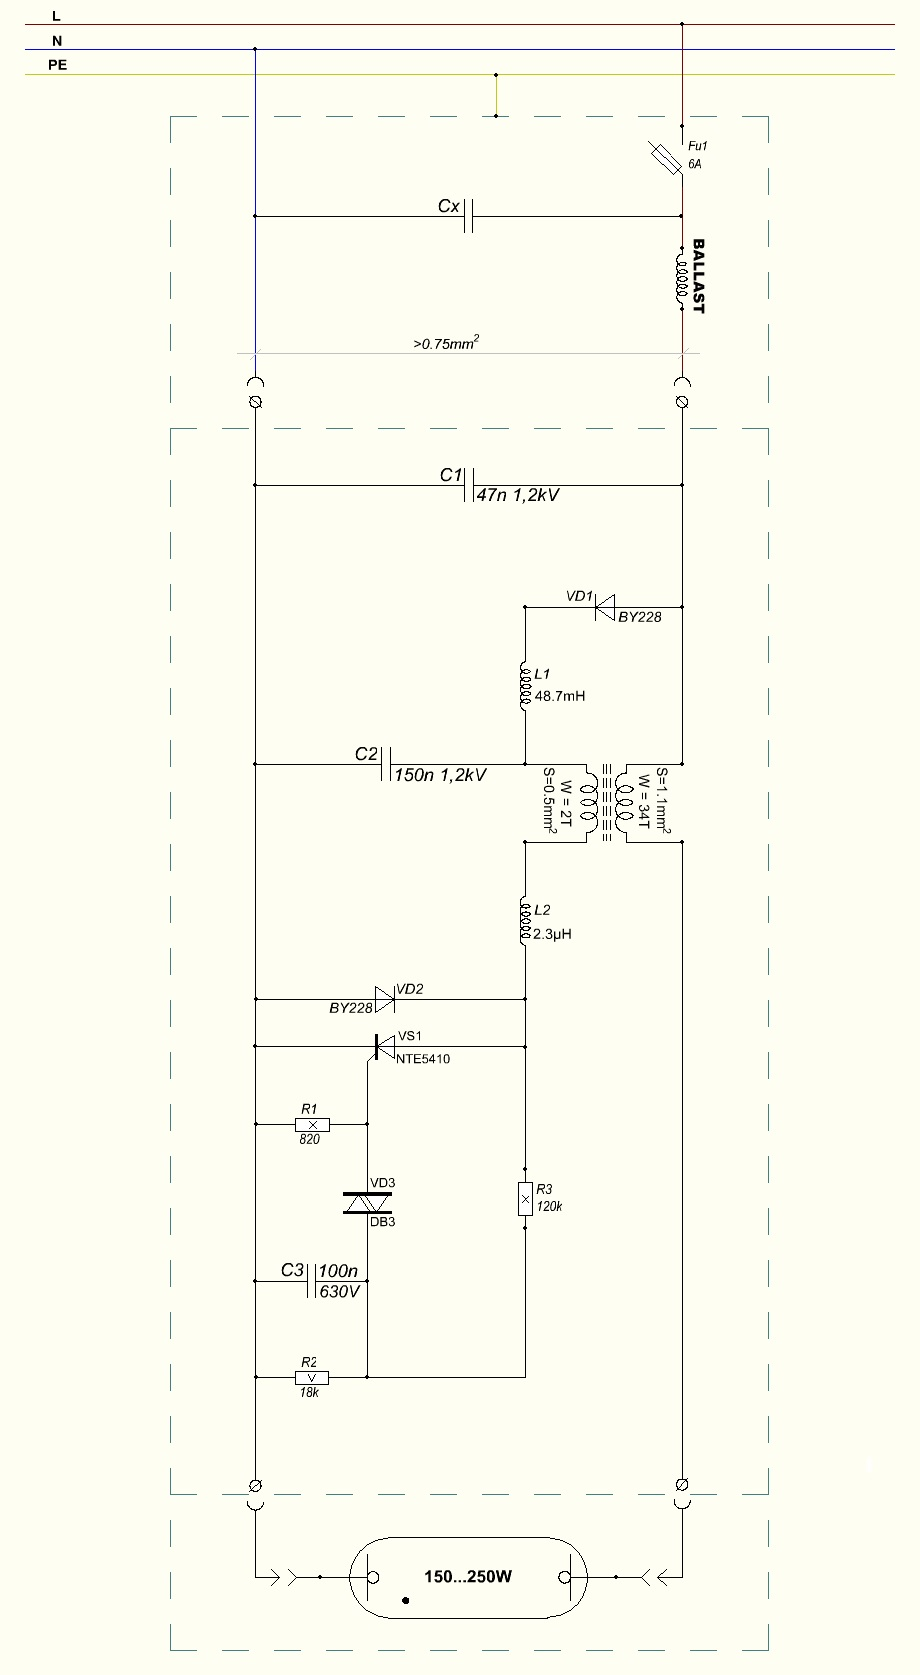 Filewiring Diagram Of Sodium Vapor Discharge Lamp Ignitor Wiring Diagrams